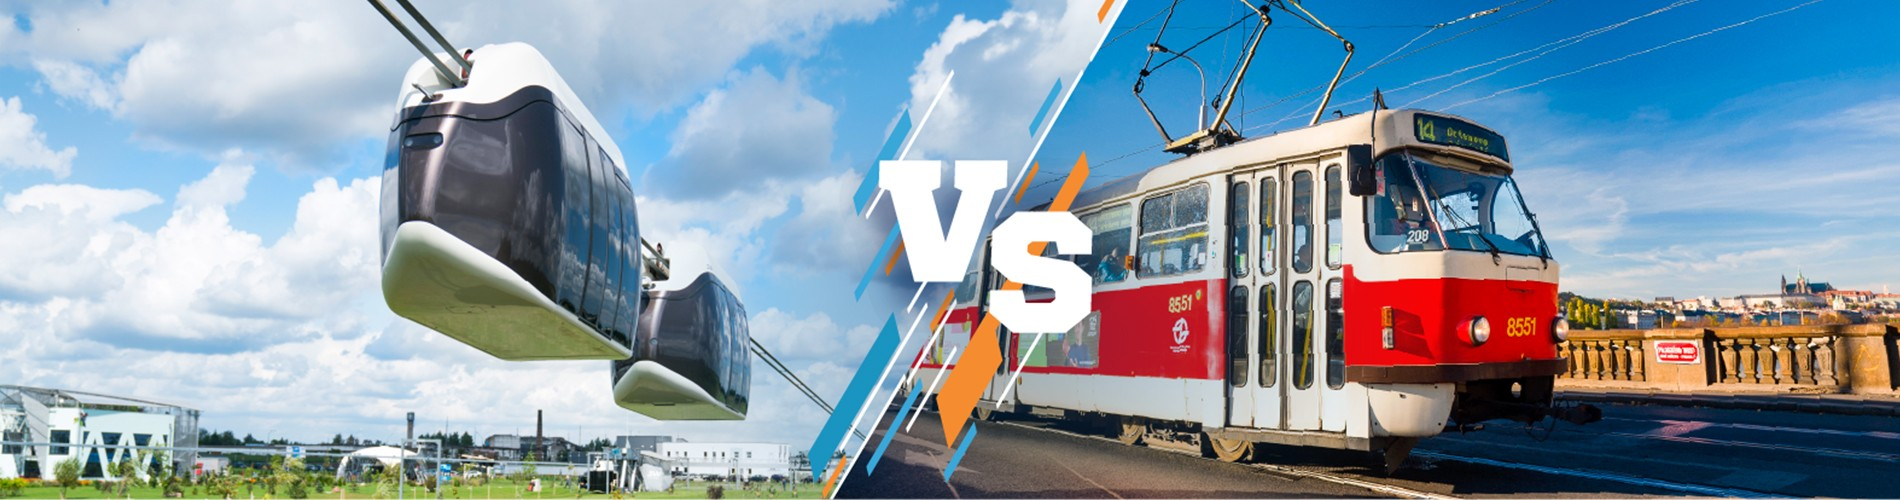 Bataille des technologies: SkyWay vs tramway